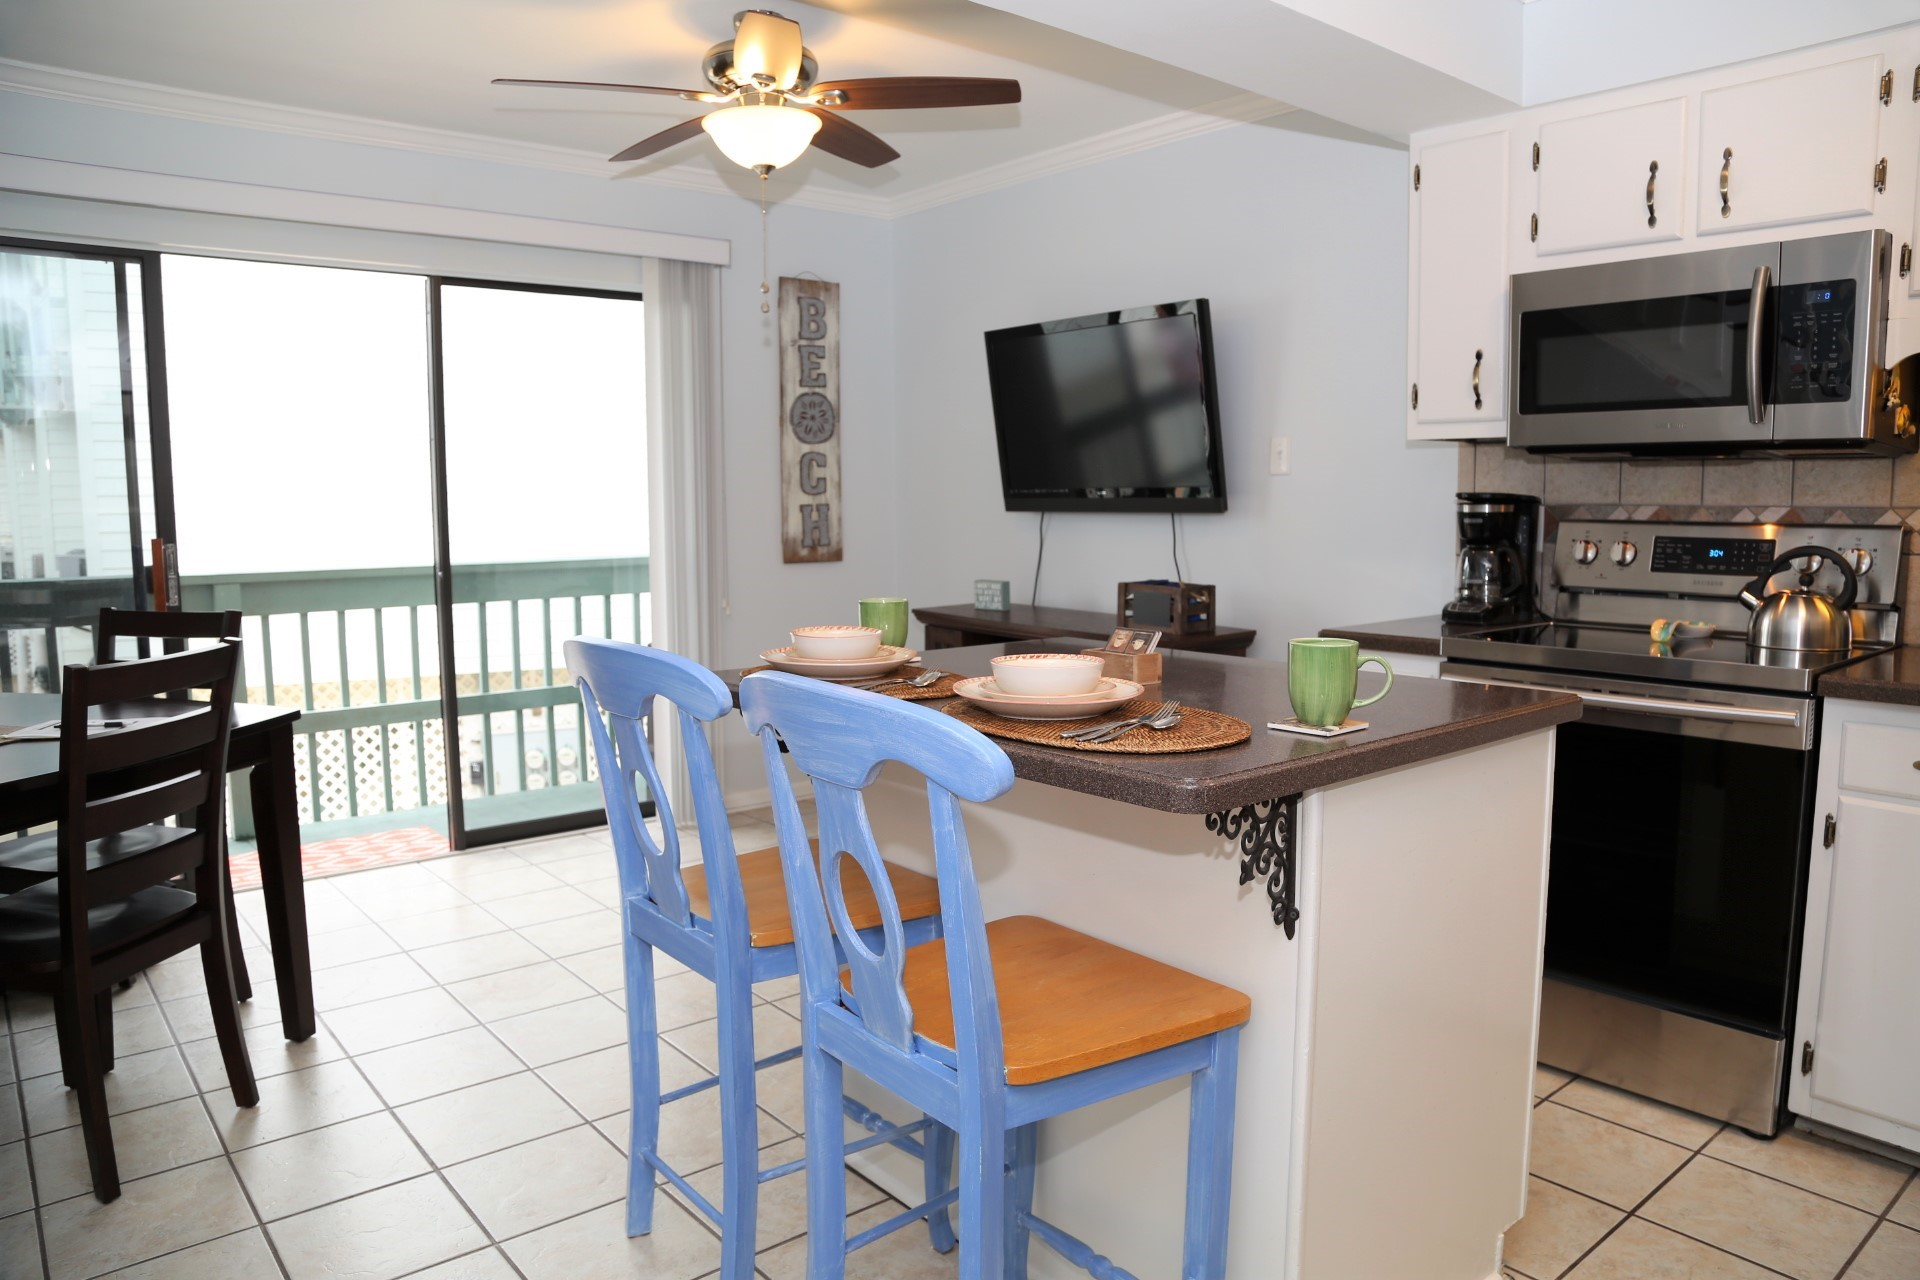 The kitchen island provides additional seating and extra cou